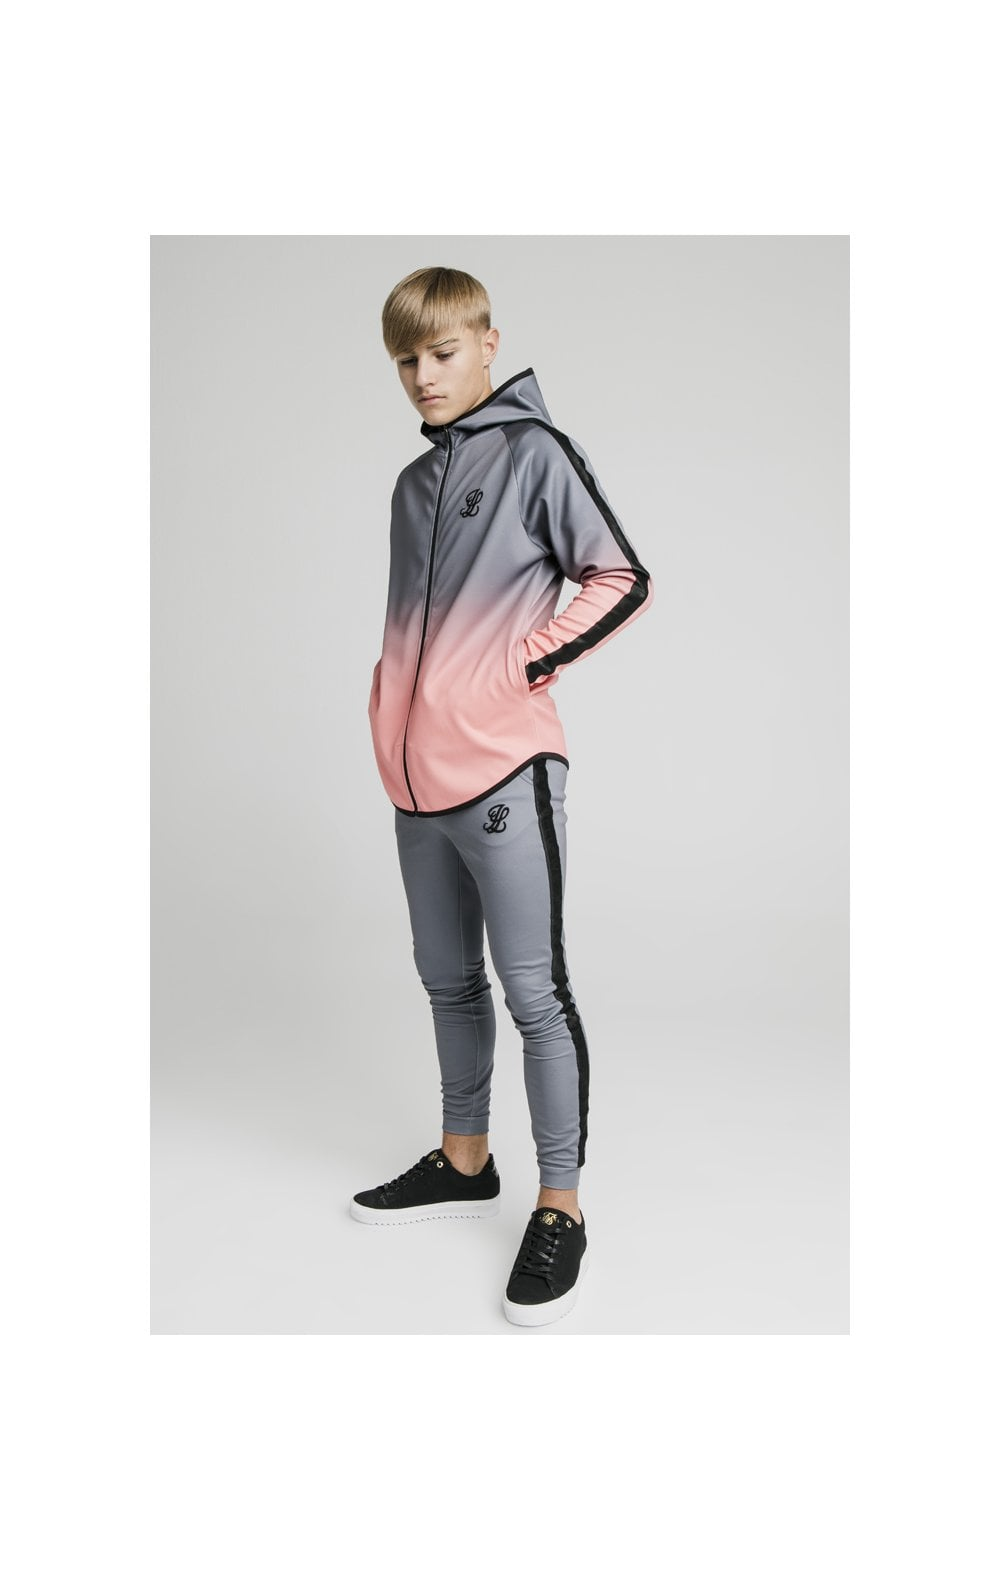 Load image into Gallery viewer, Illusive London Athlete Zip Through Fade Hoodie - Grey & Peach (3)